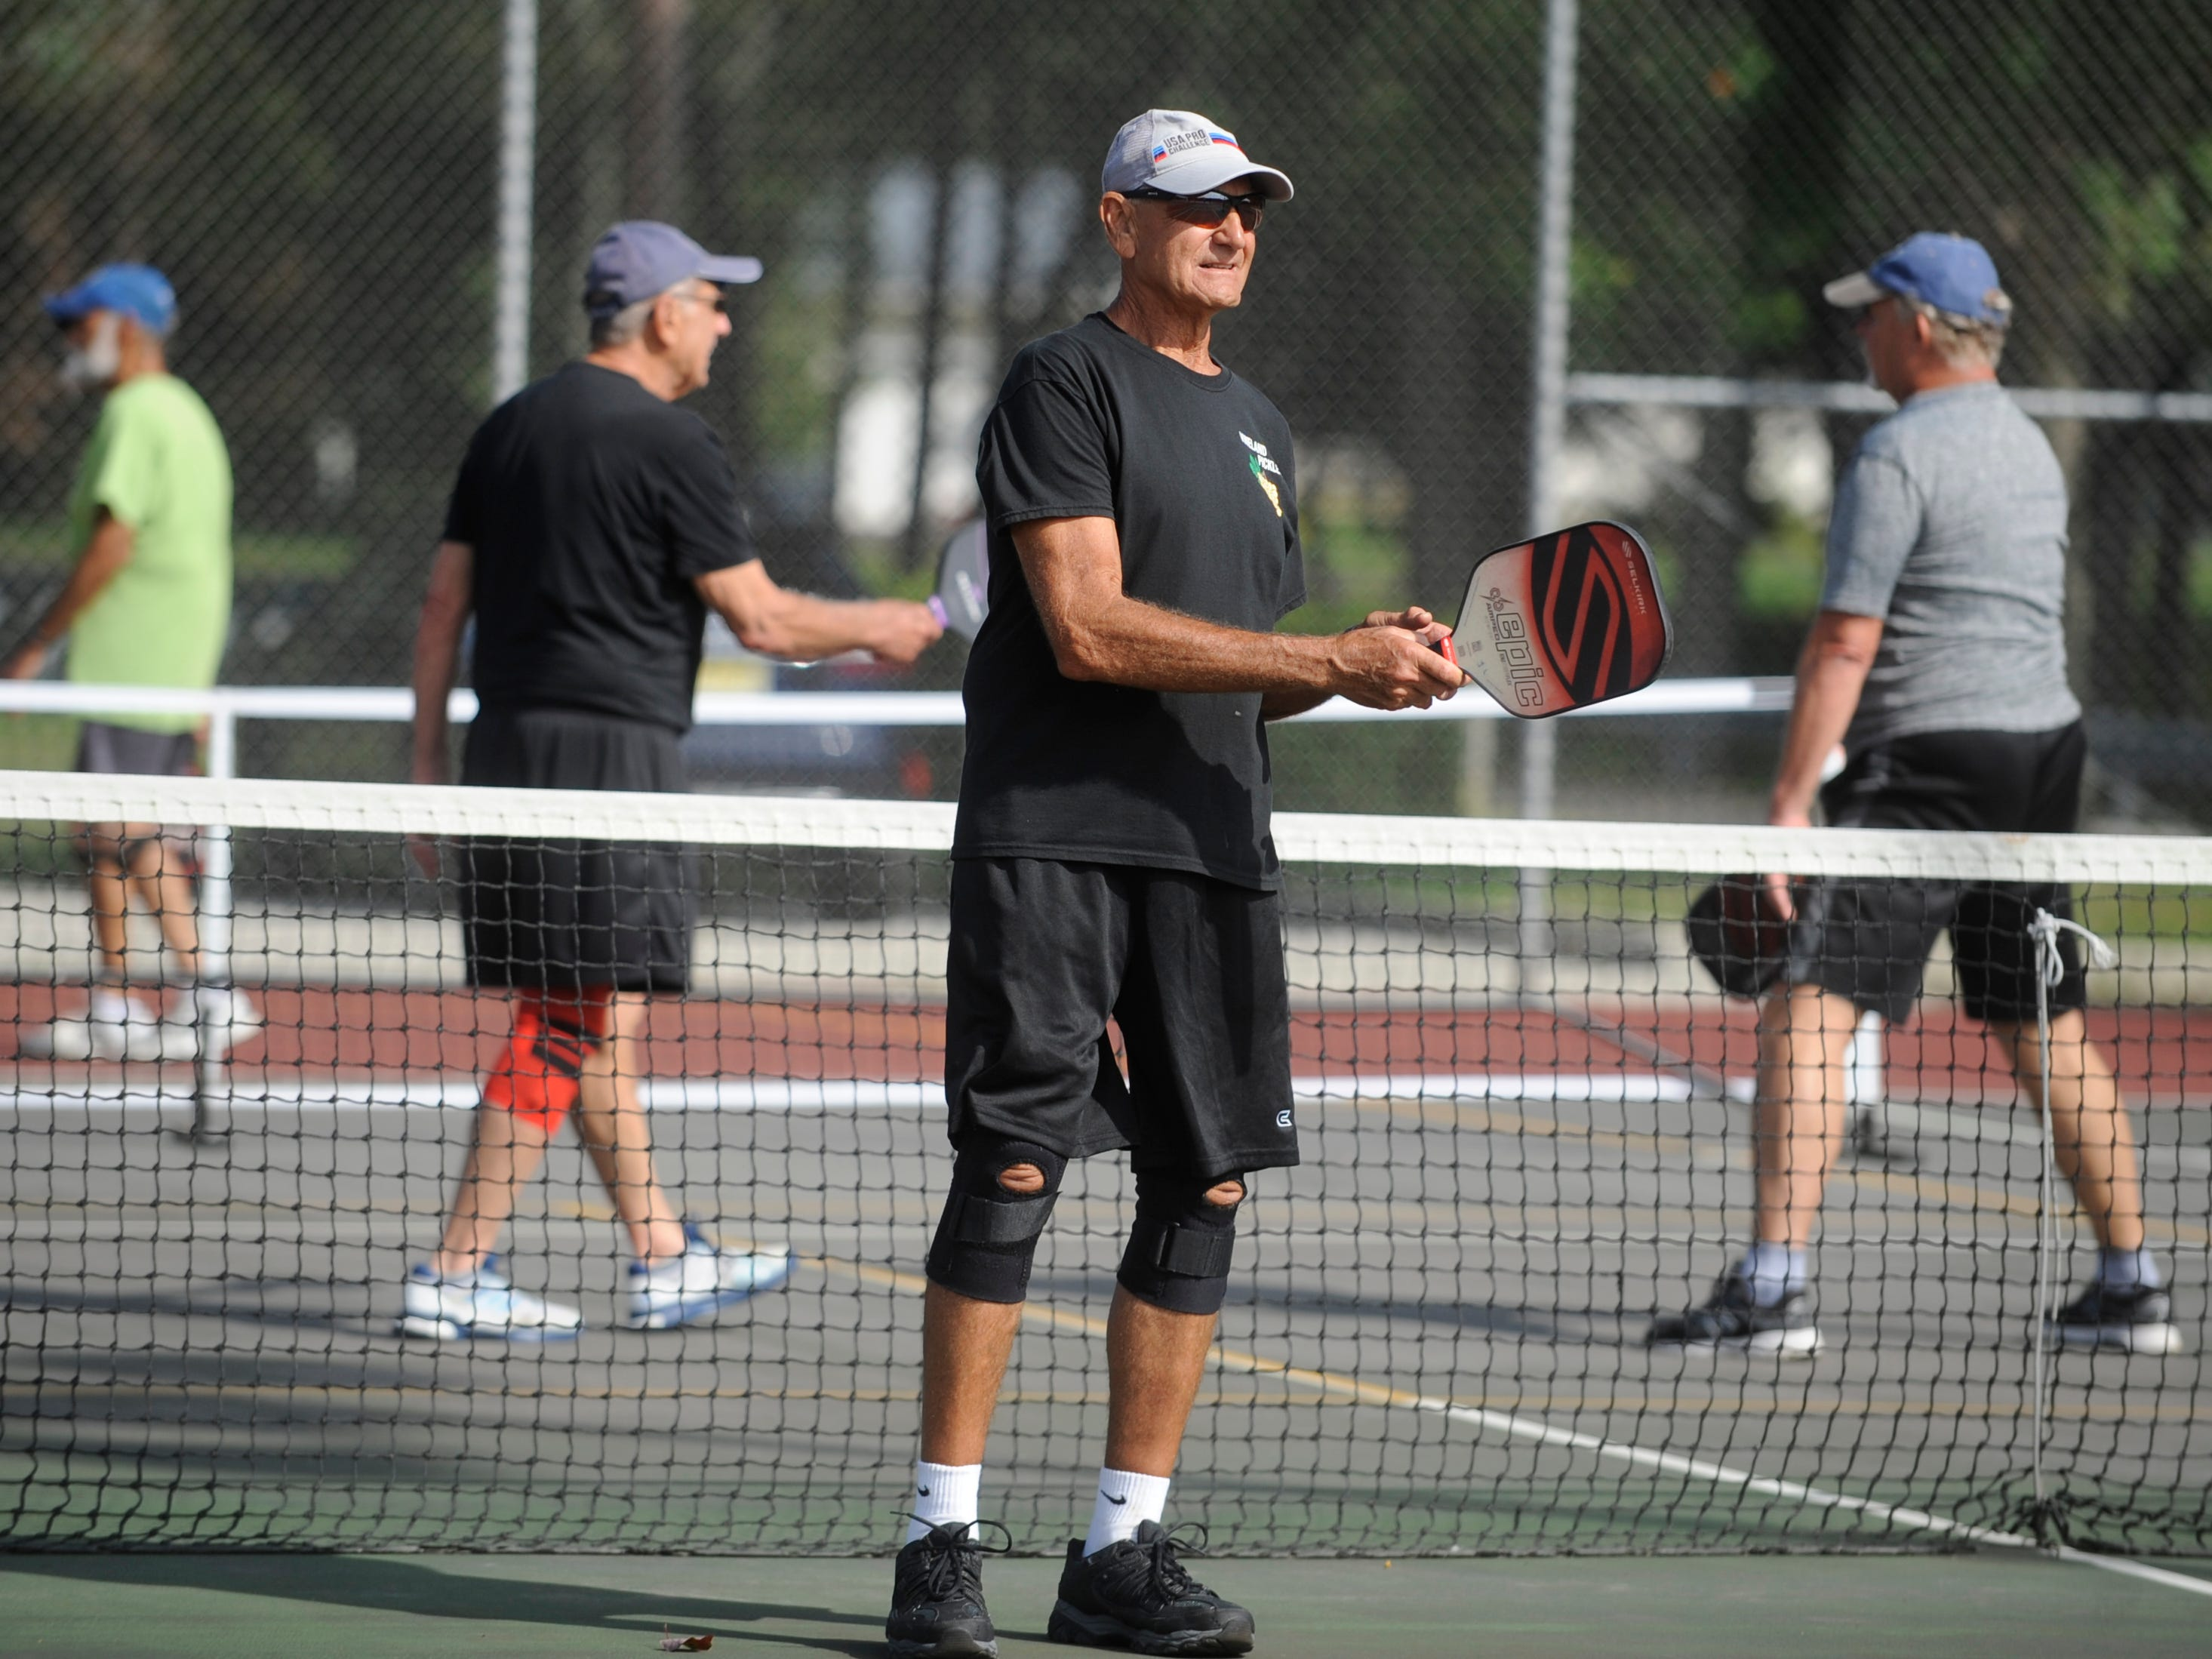 John Leopold, 74 of Vineland plays pickleball at Pagluighi Park in Vineland on Wednesday, October 3, 2018.